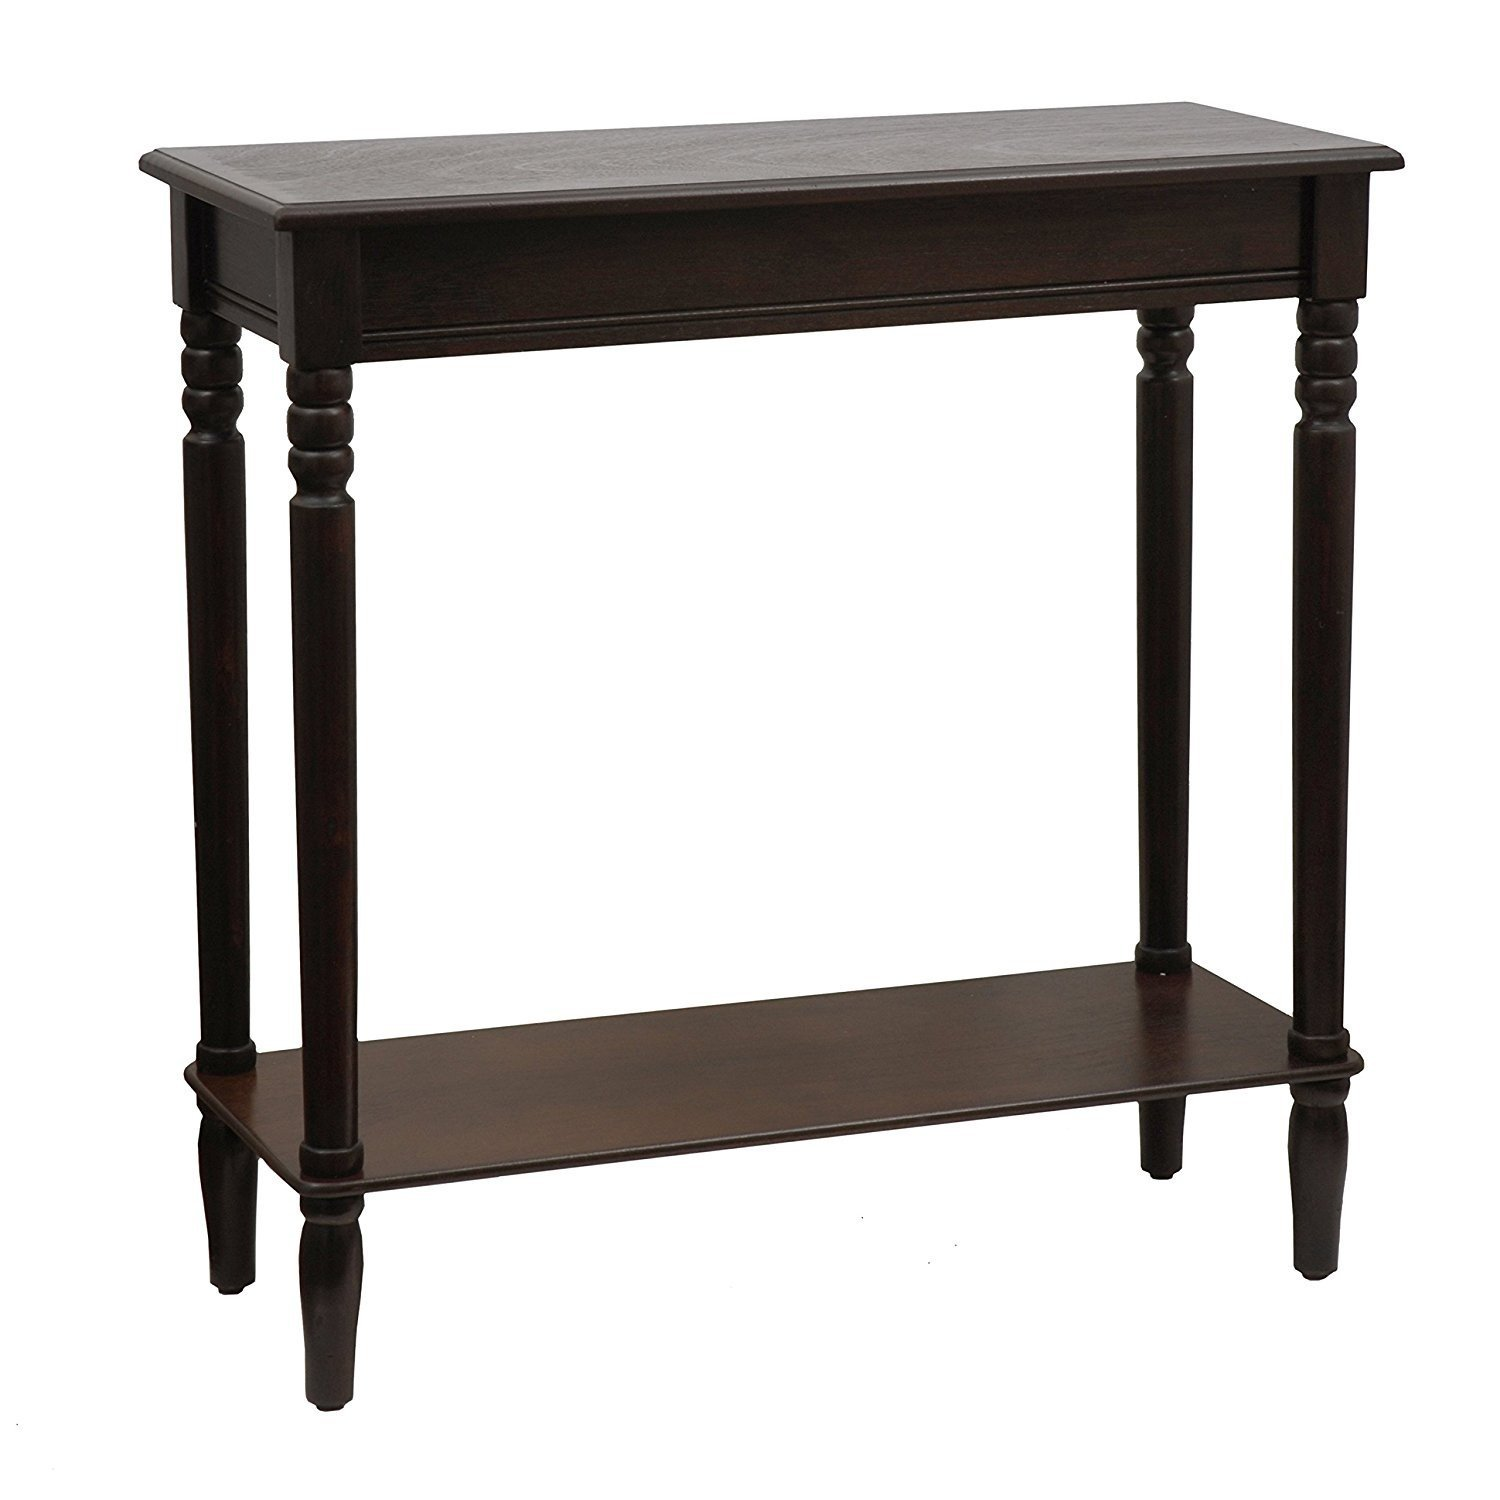 desk console table find line bunjt bedroom accent tables get quotations indoor multi function study computer home office living room modern style narrow with drawers homesense